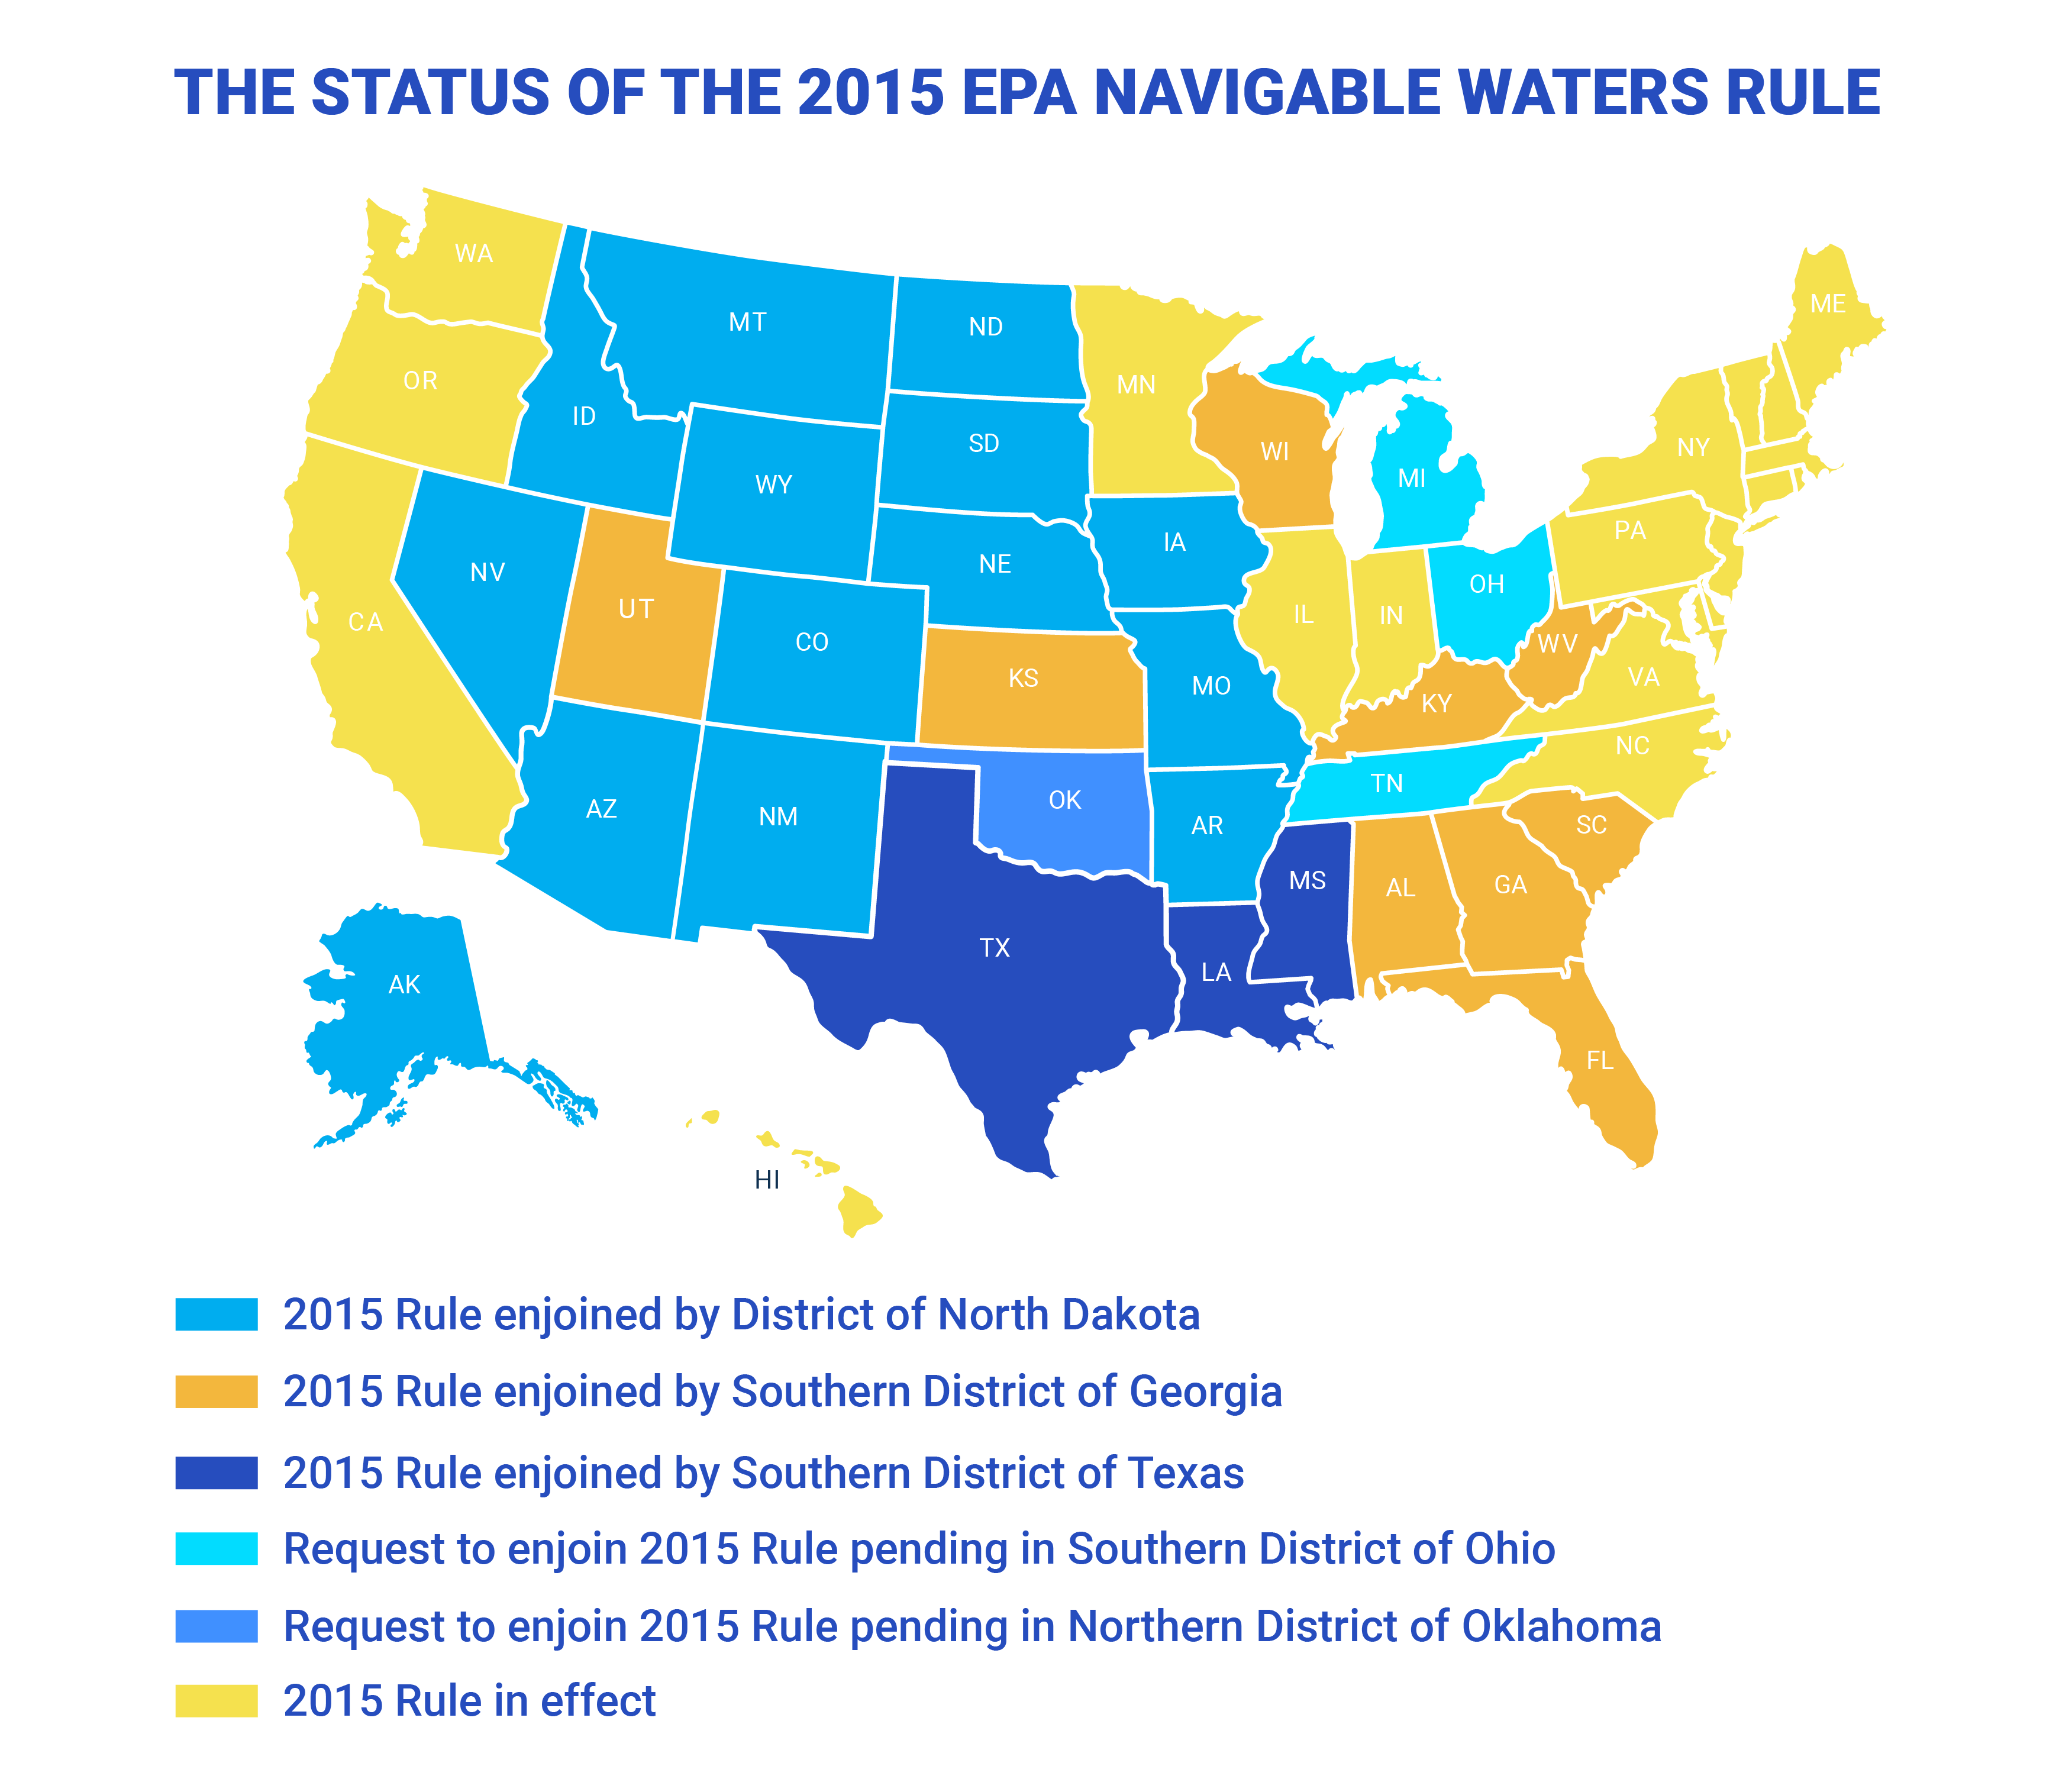 Us Navigable Waters Map How to find out if the EPA's 'navigable waters' regulations affect